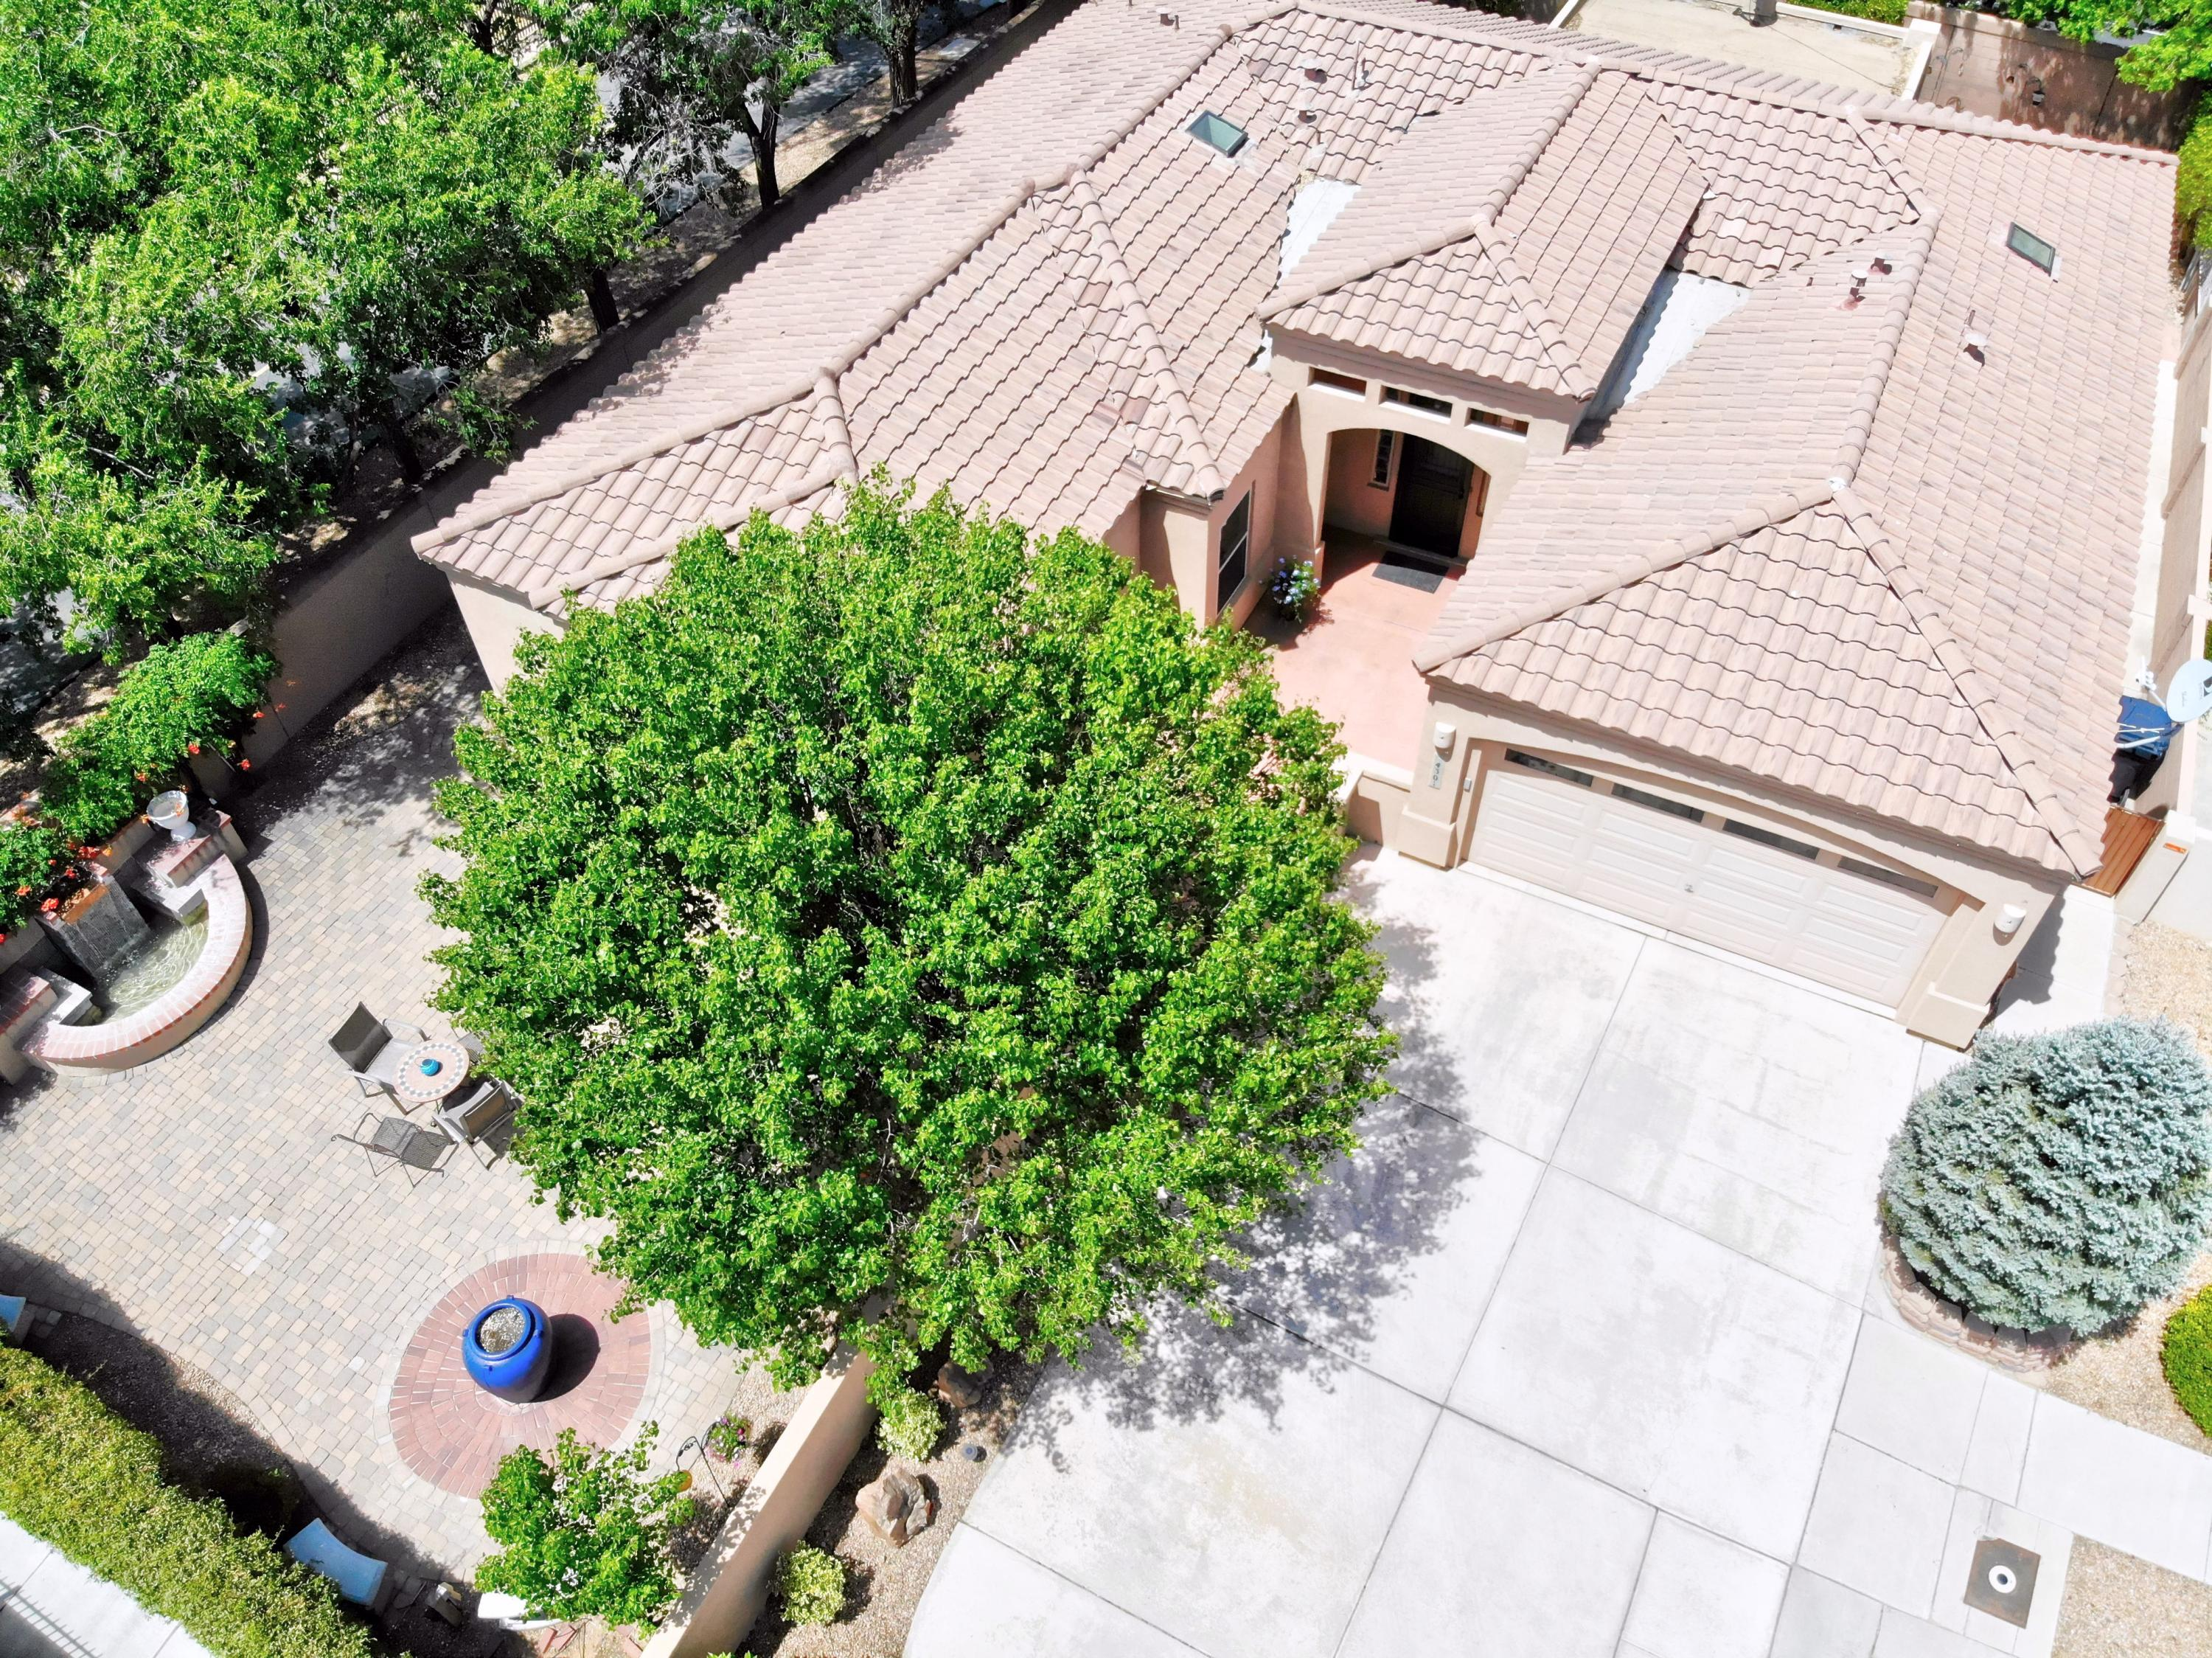 Gorgeous, enchanting large corner lot in Oxbow North gated community. Upon entry into courtyard gate you will find lovely outdoor entertaining areas w/fountains, shade trees, flowering shrubs & lush lawn. A lovely one story home w/wonderful floor plan perfect for home office or multi-gen living. Features include bonus room w/separate entrance, great room w/gas log fireplace, nook, SS appliances to include a Thermador gas range, beautiful cabinetry & large pantry in kitchen. Picture windows bring outdoors in, owner's suite w/2 walk-in closets, dbl. sinks, garden tub/separate shower, secondary bedrooms situated down hall & 3/4 bath, incls. a perfect room for in-law suite w/ it's own sitting area. Also, lots of storage, covered patio, gas stub out for BBQ, updated laminate flooring, & nichos.